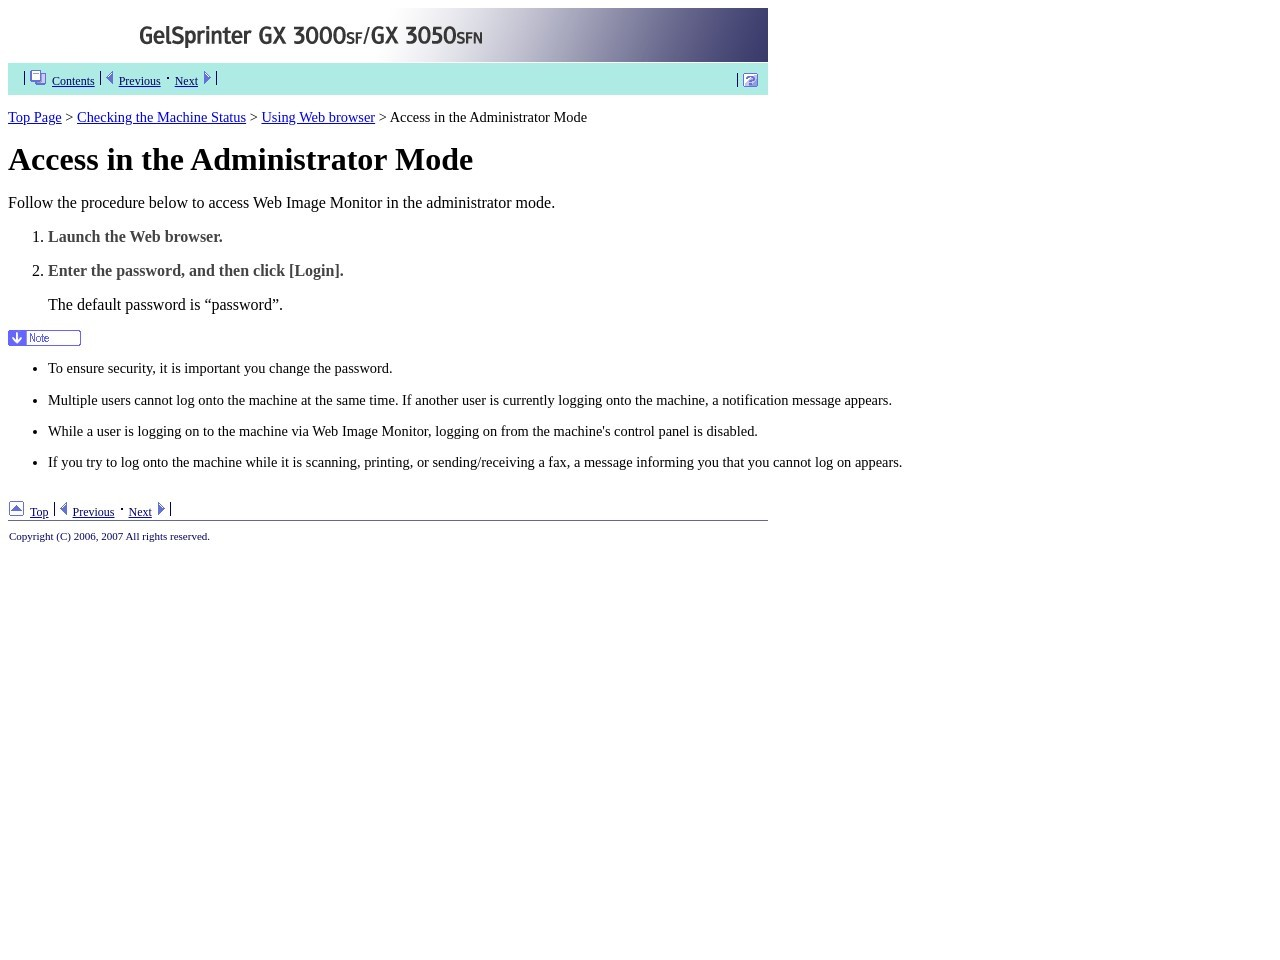 Access in the Administrator Mode - Ricoh